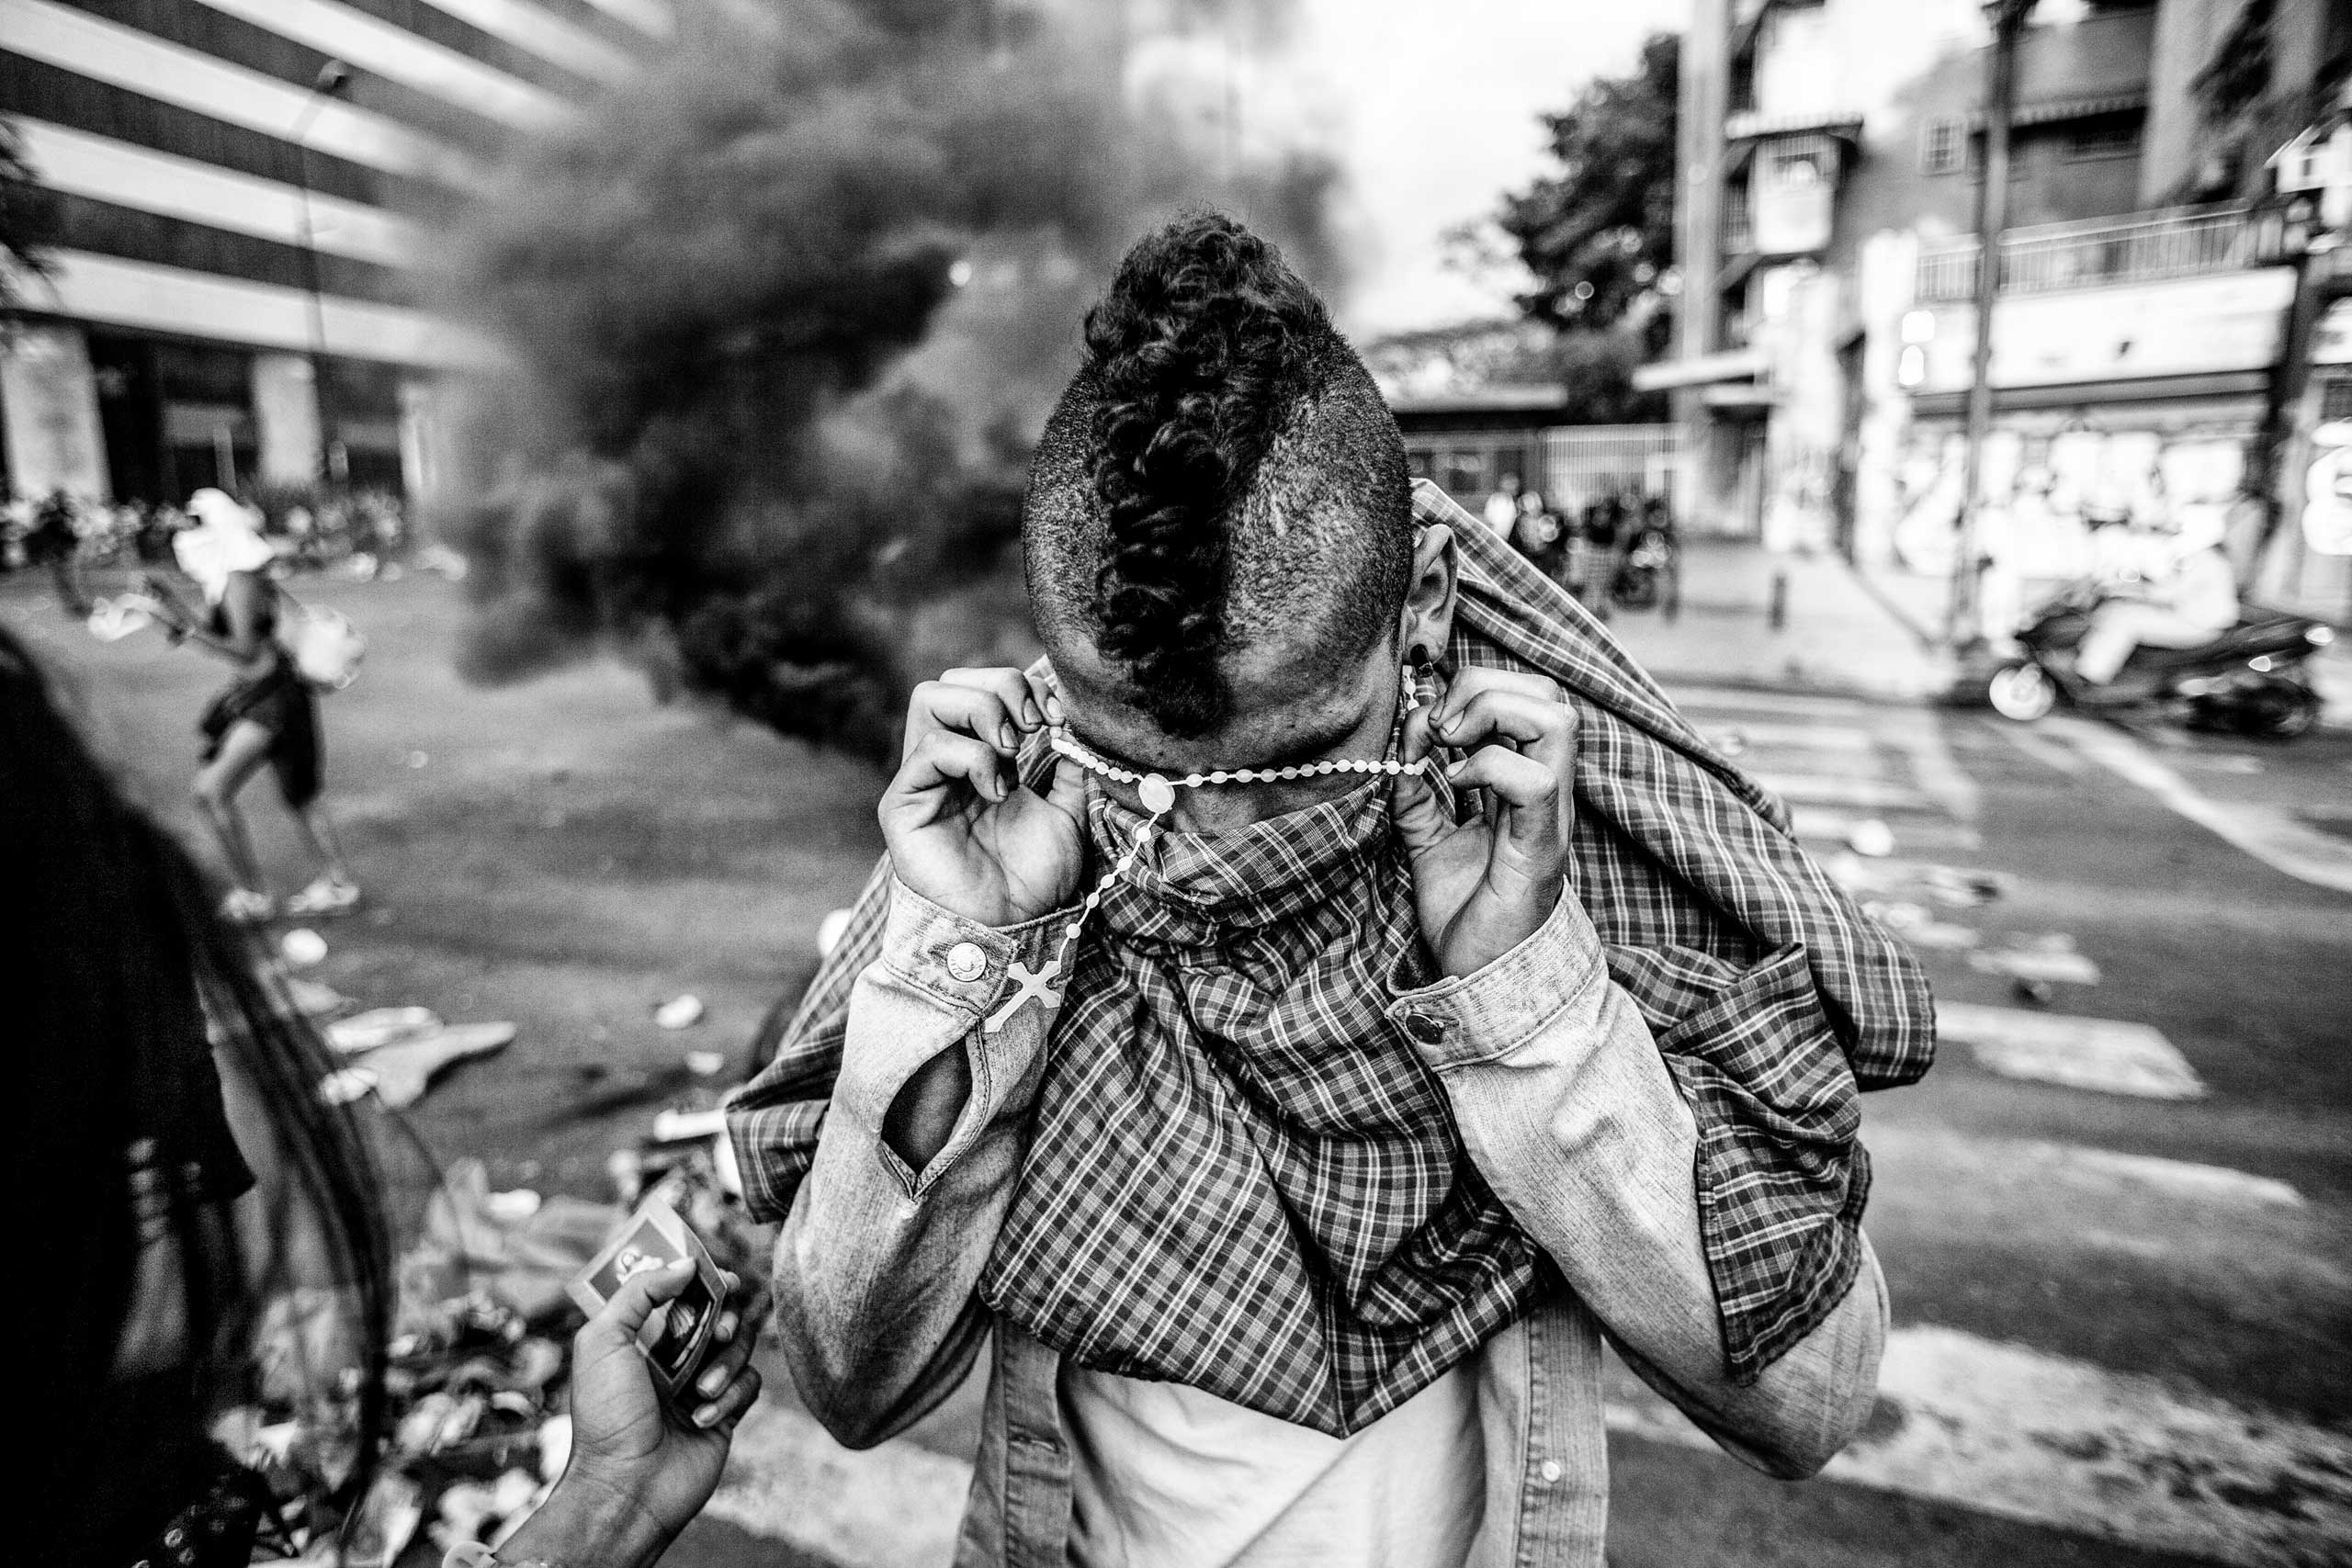 A demonstrator puts a rosary on over his head before clashing with the Bolivarian National Guard during anti-government protests in Caracas. March 2014.